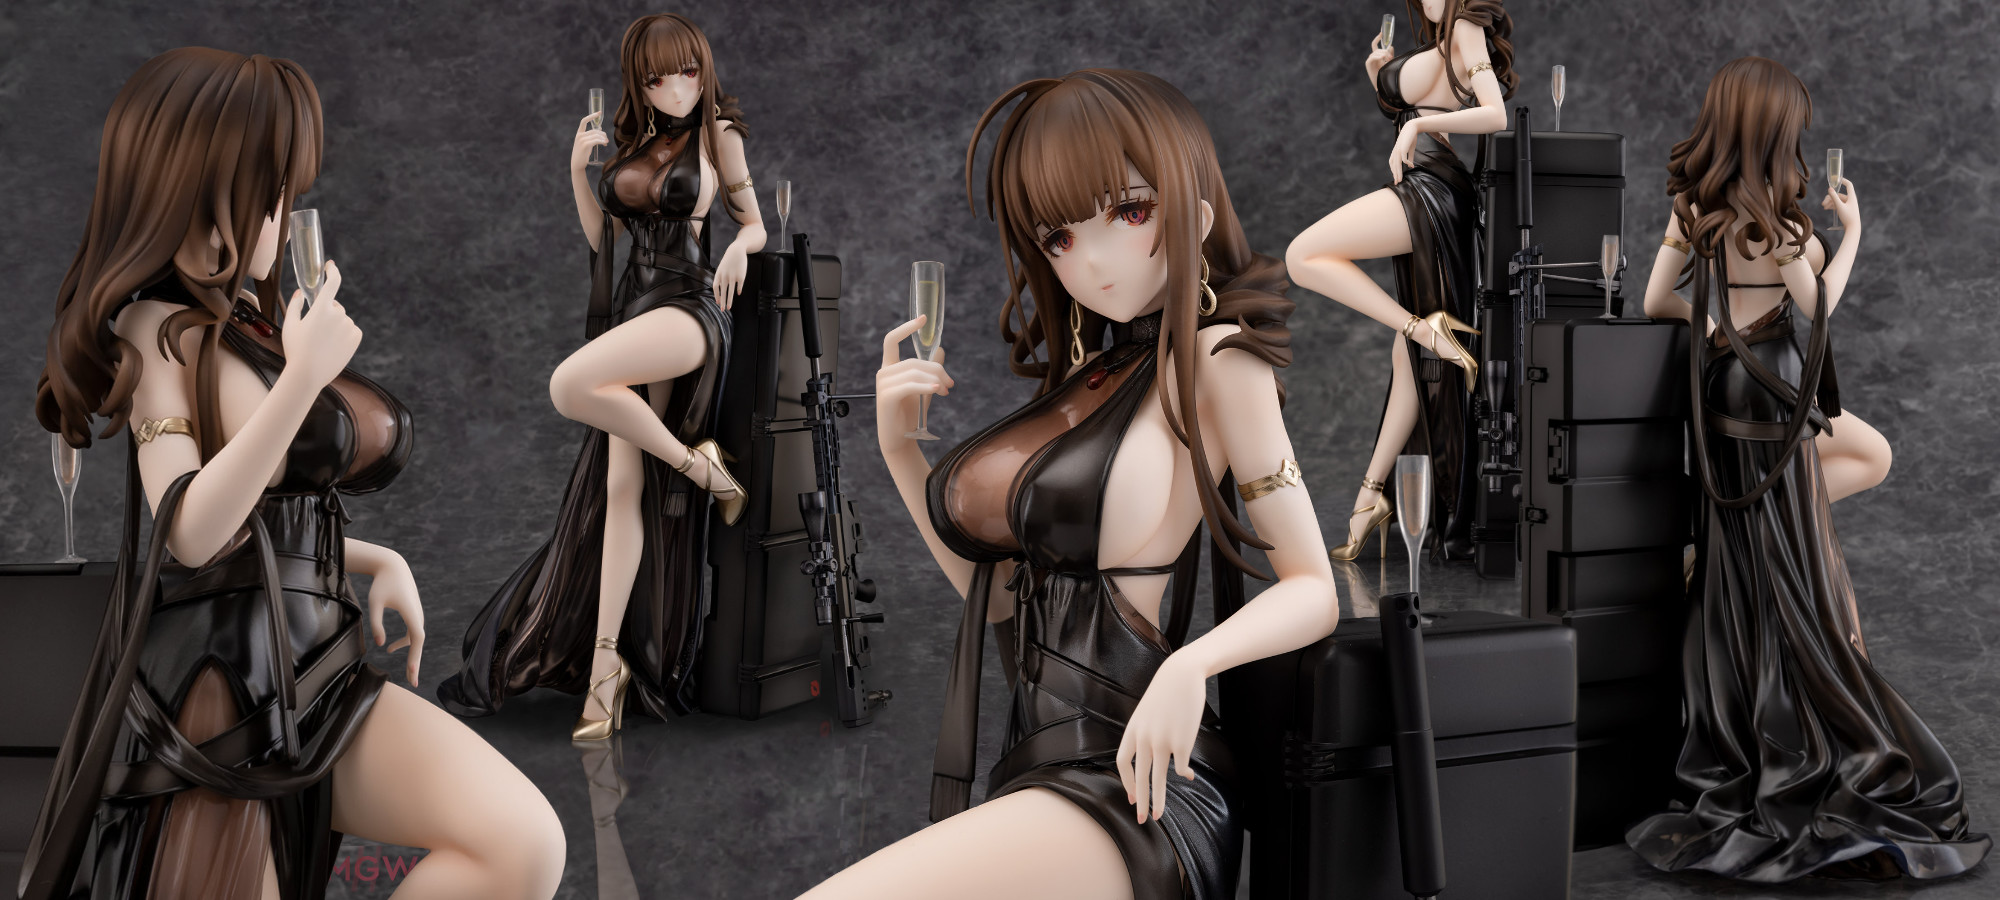 Gd DSR 50 Best Offer Ver. by Wonderful Works from Girls Frontline